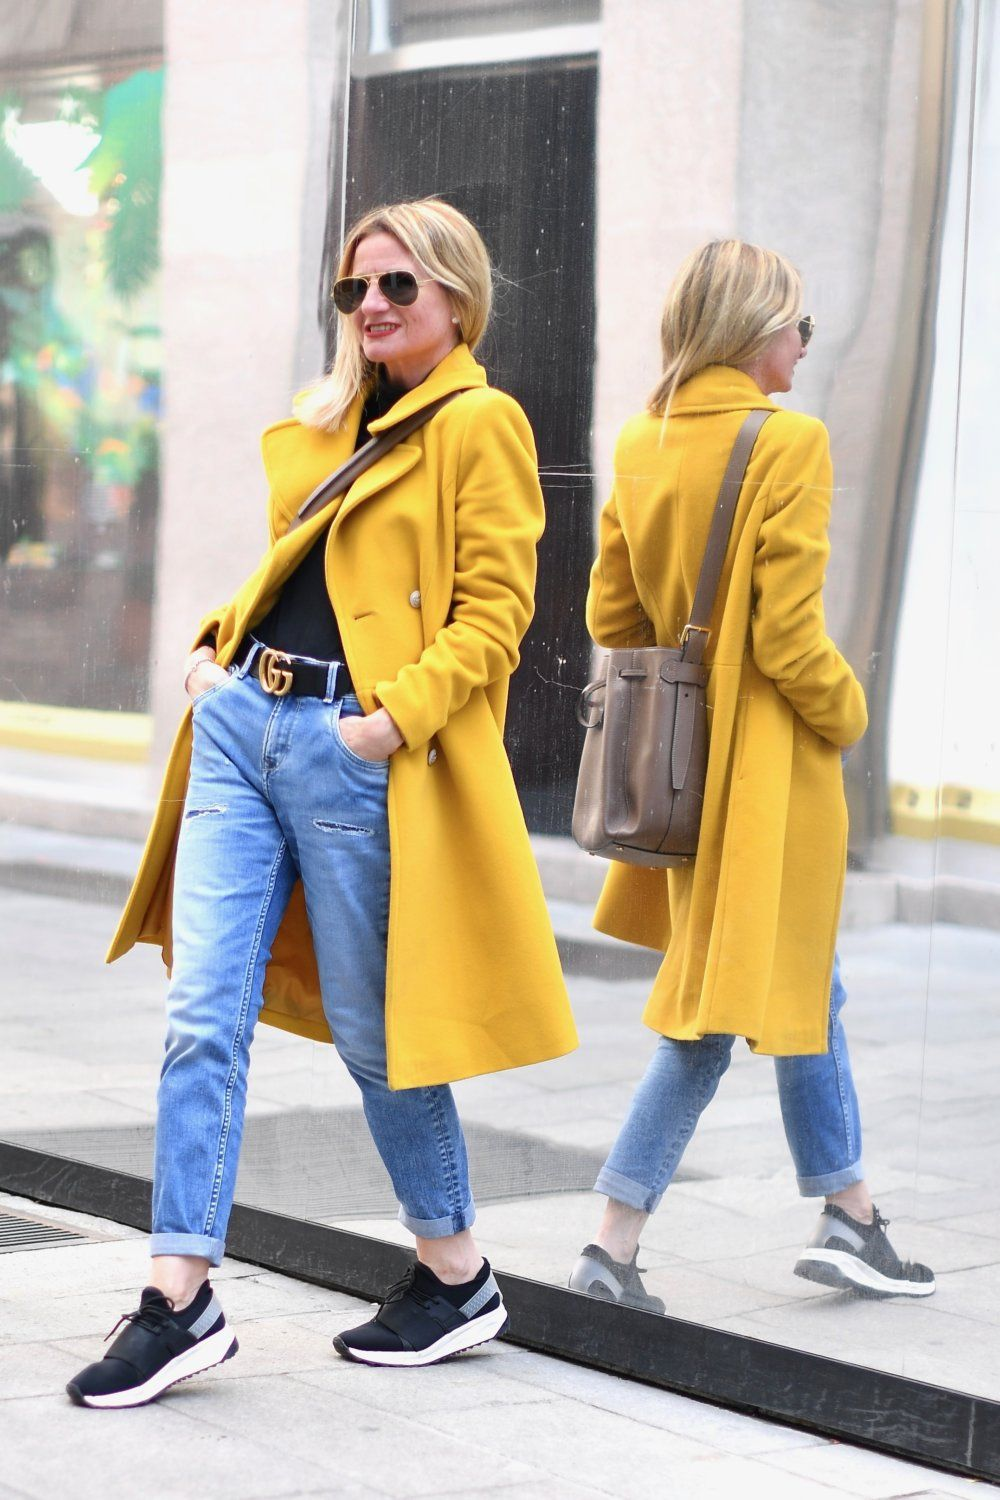 Top 10 tips that are fashionable to wear in the fall 15